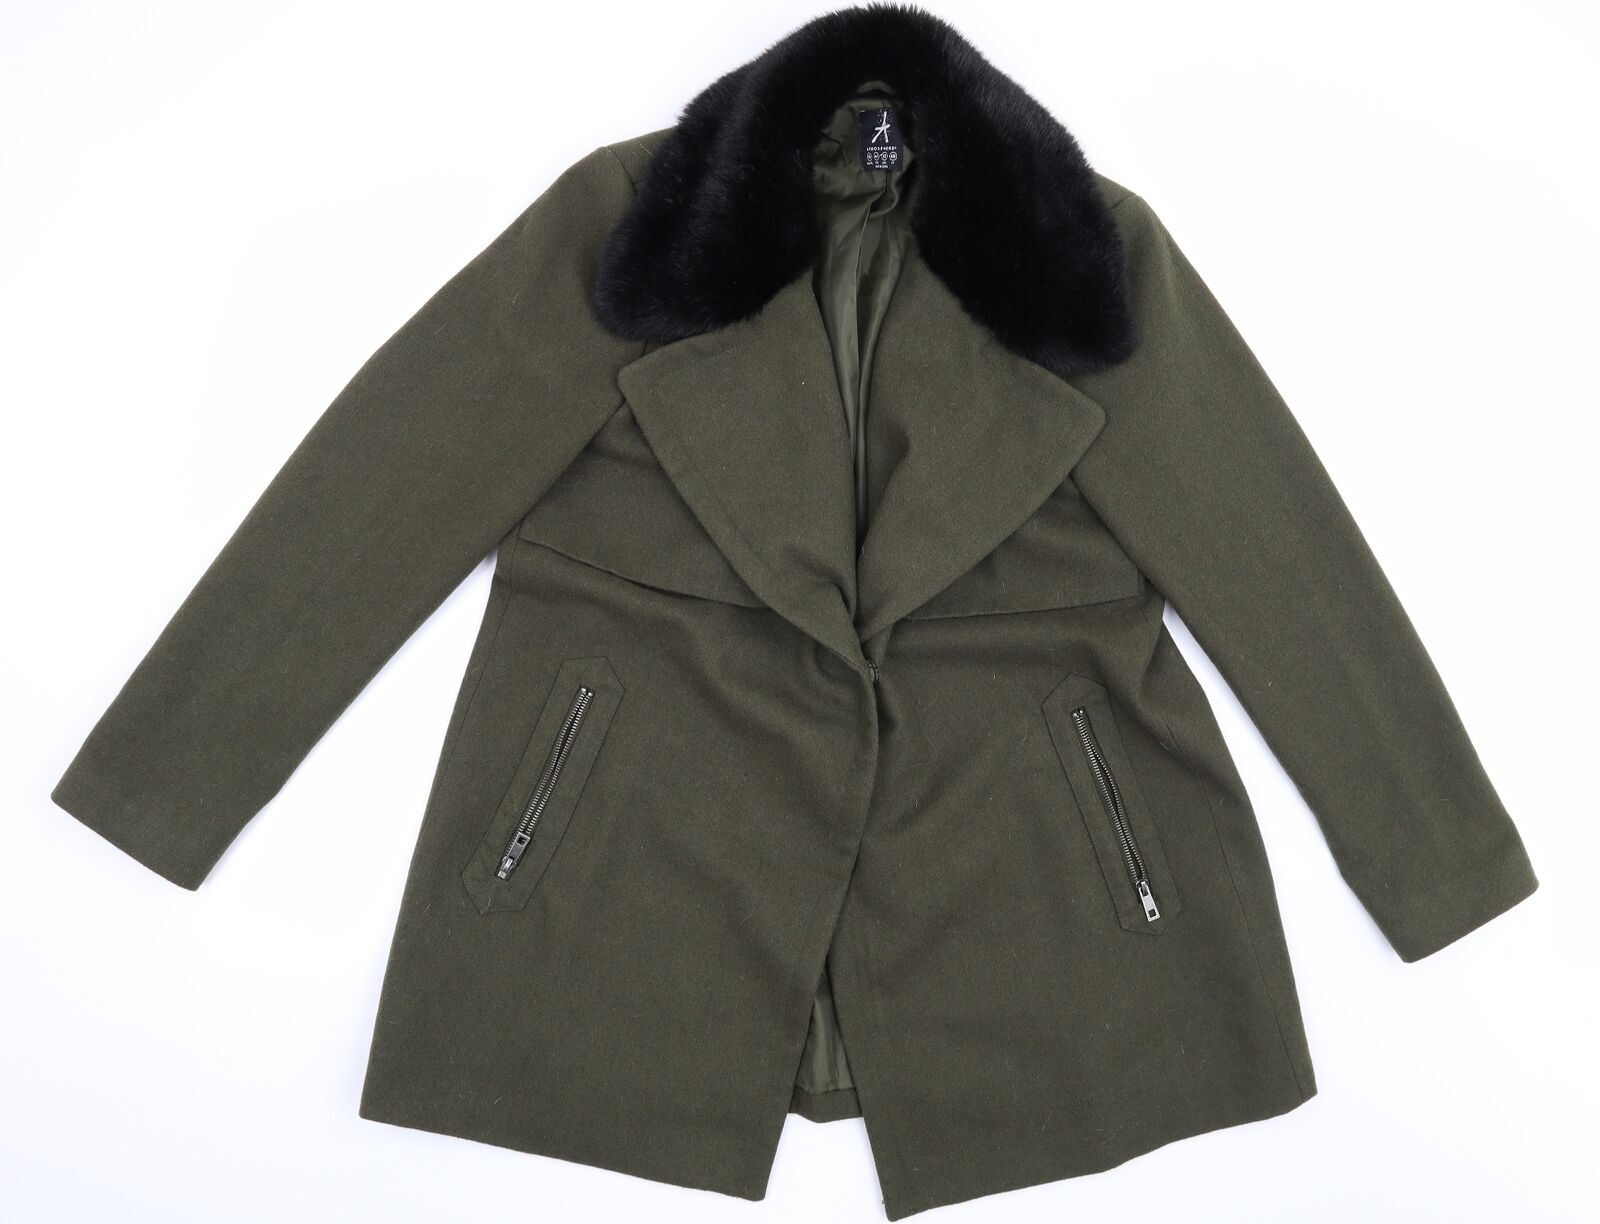 Atmosphere Womens Green Pea Coat Size 16